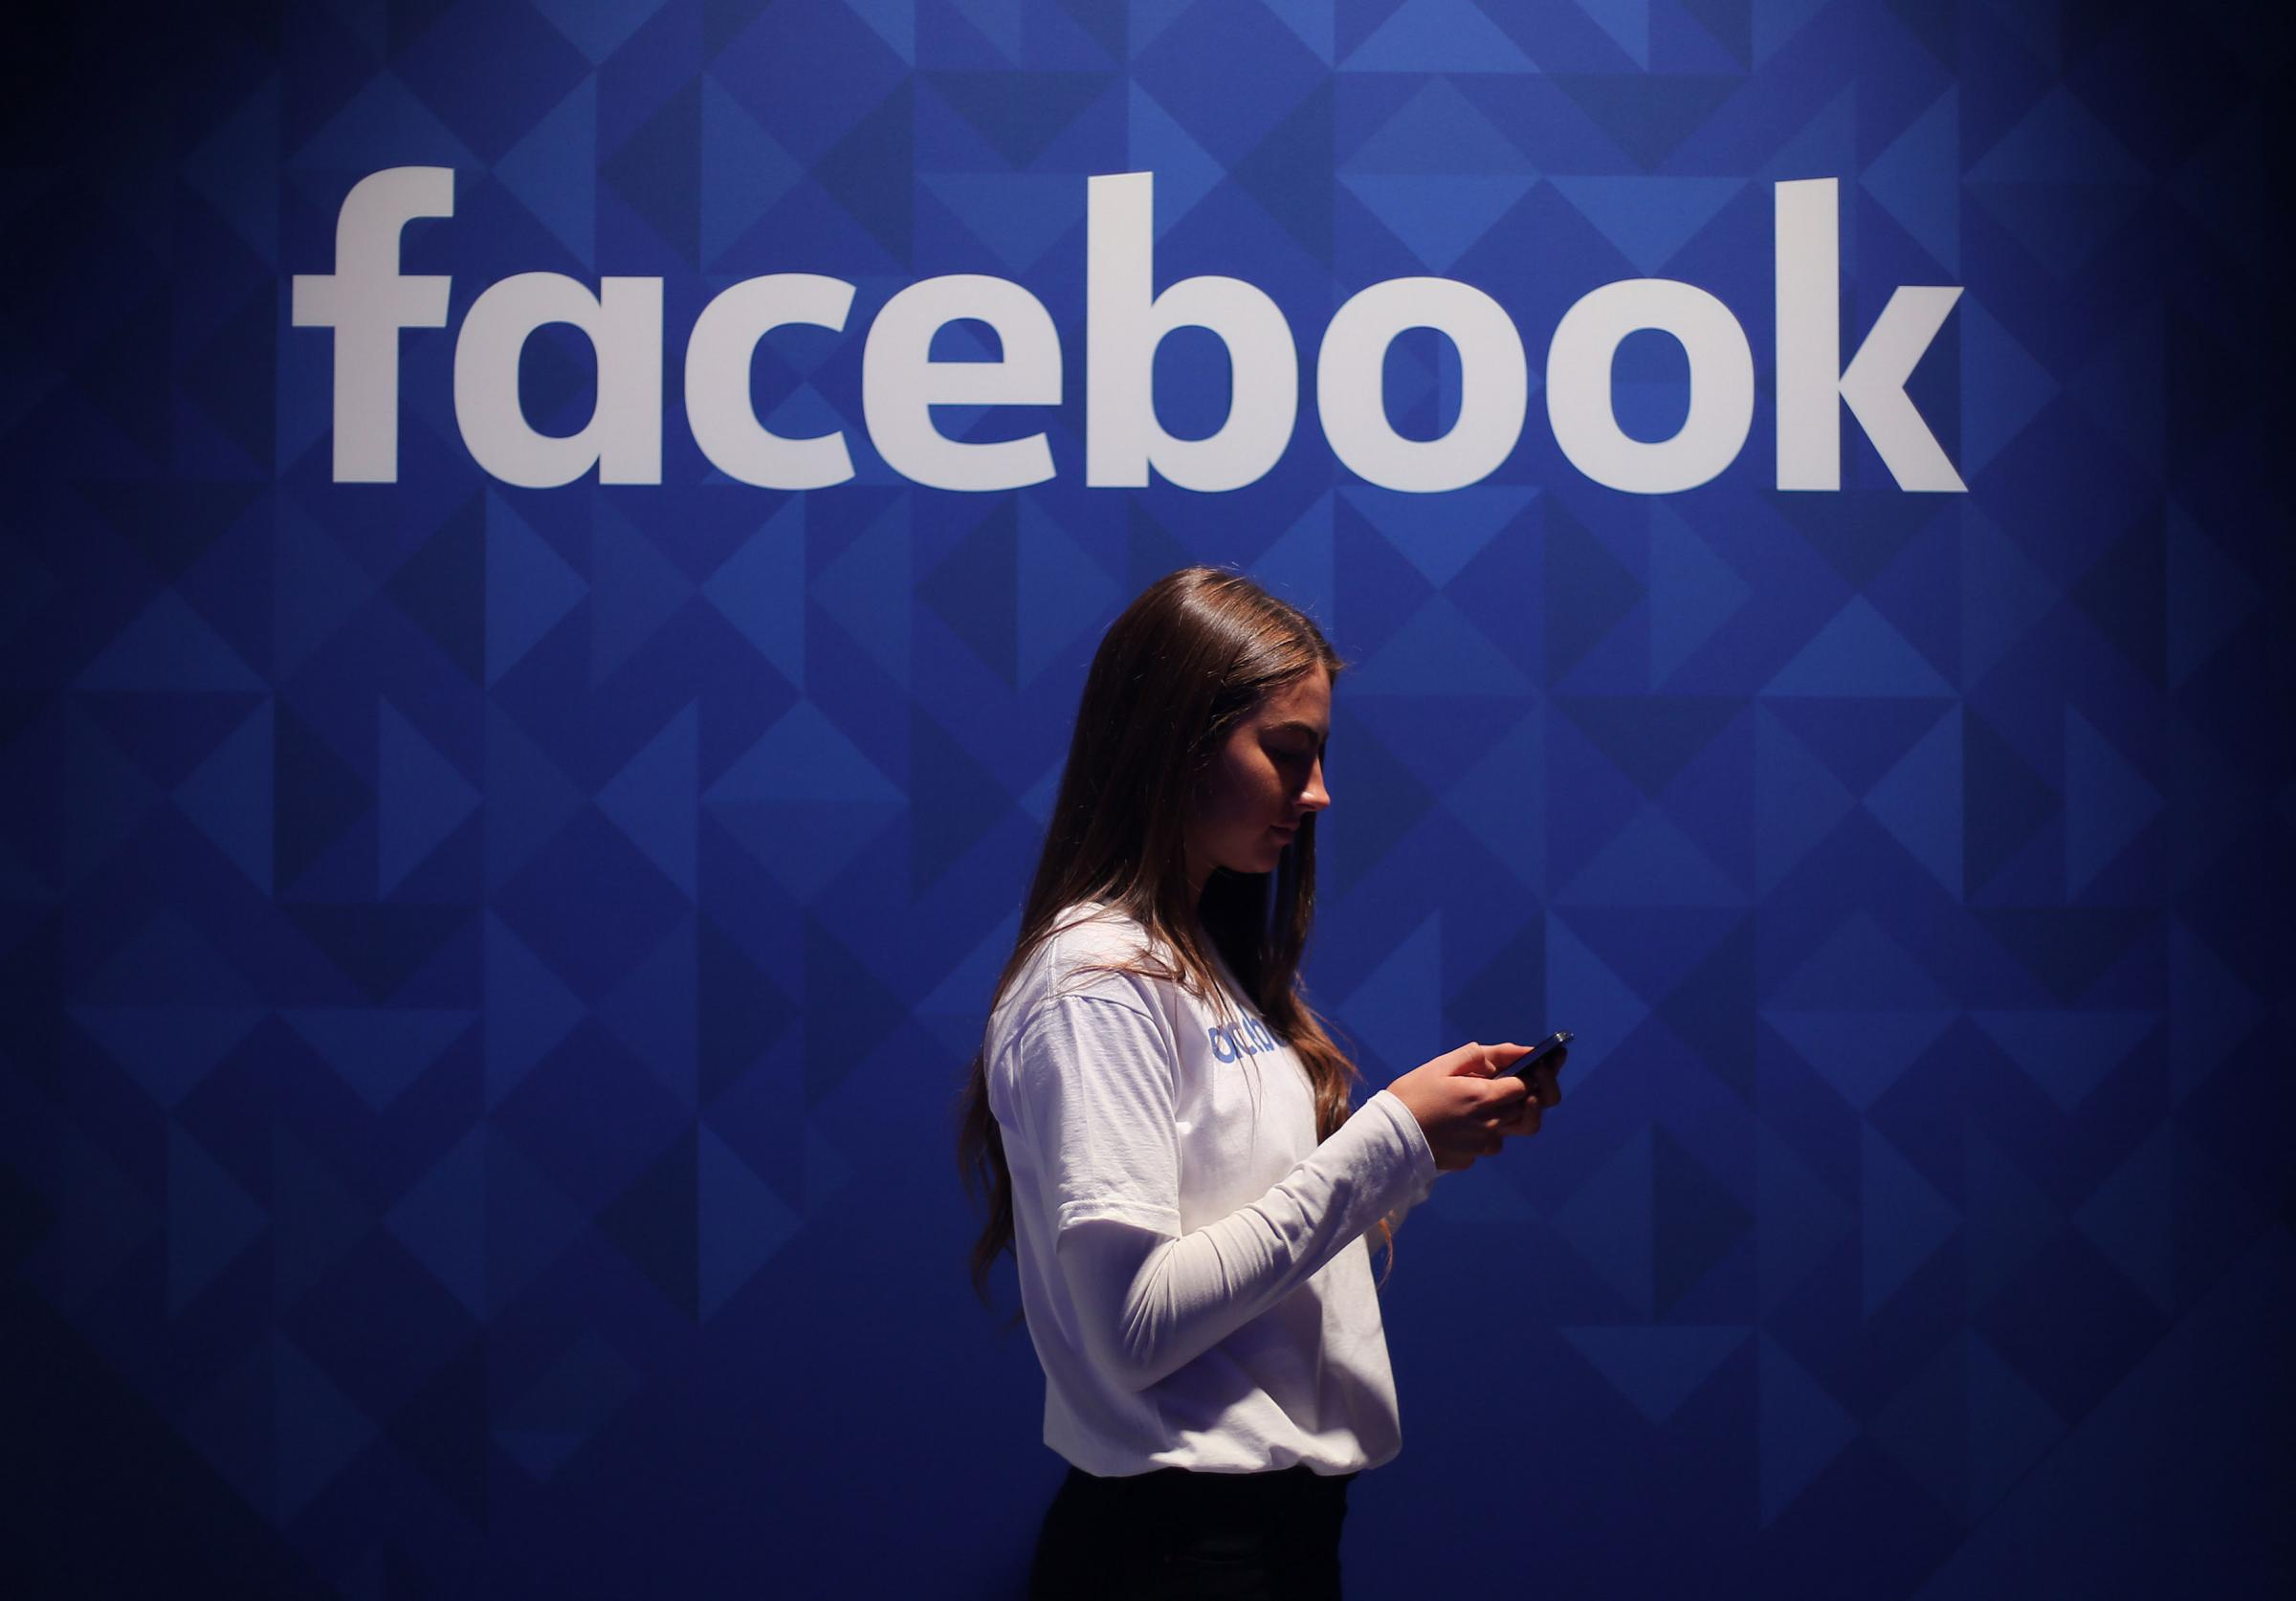 Facebook's £4.5m fund for 80 local newspaper jobs